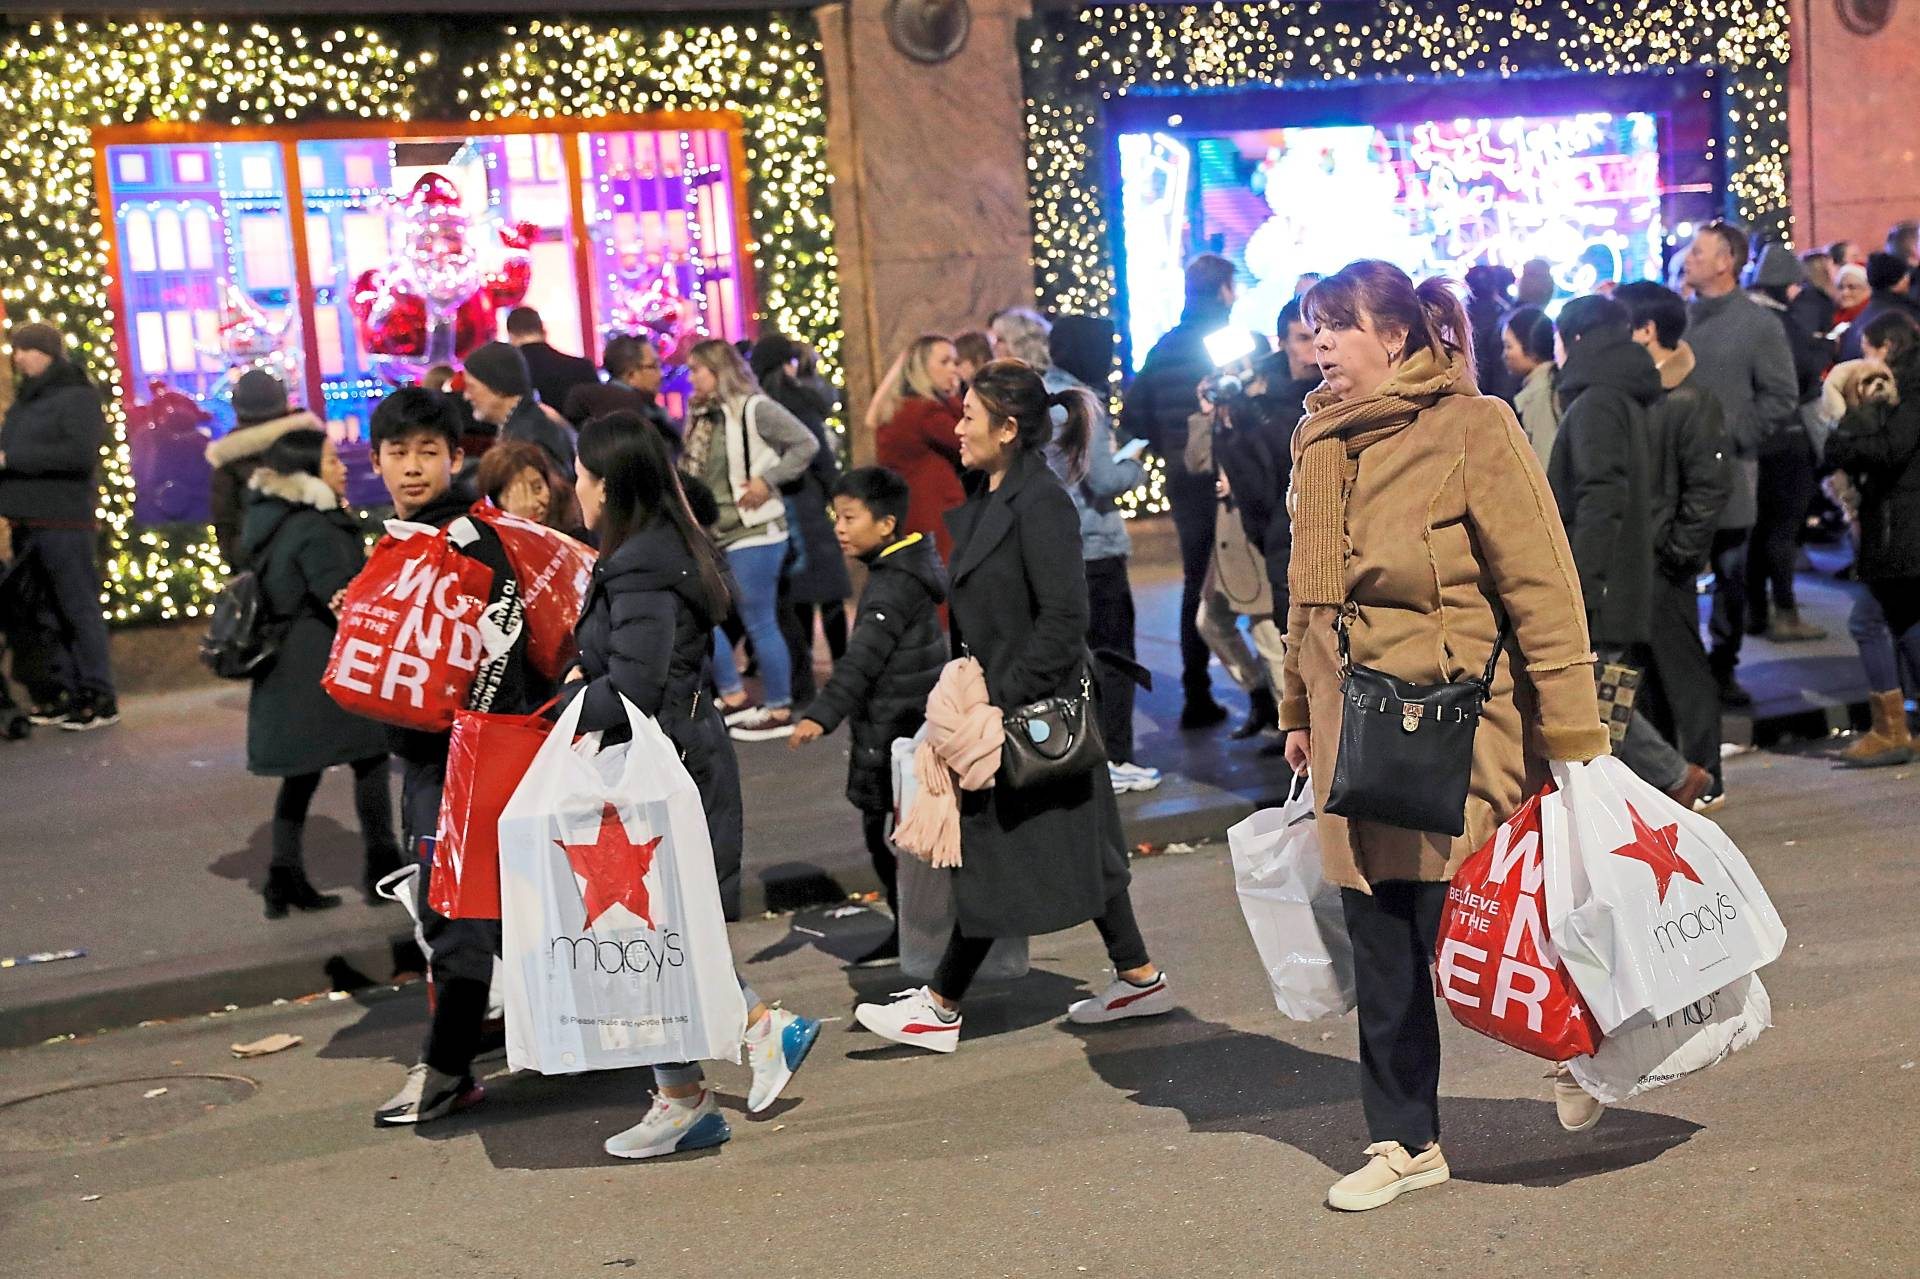 THING OF THE PAST: People carry shopping bags from Macy\'s Herald Square during early opening for the Black Friday sales in Manhattan, New York City, U.S., November 28, 2019. REUTERS/Andrew Kelly/File Photo